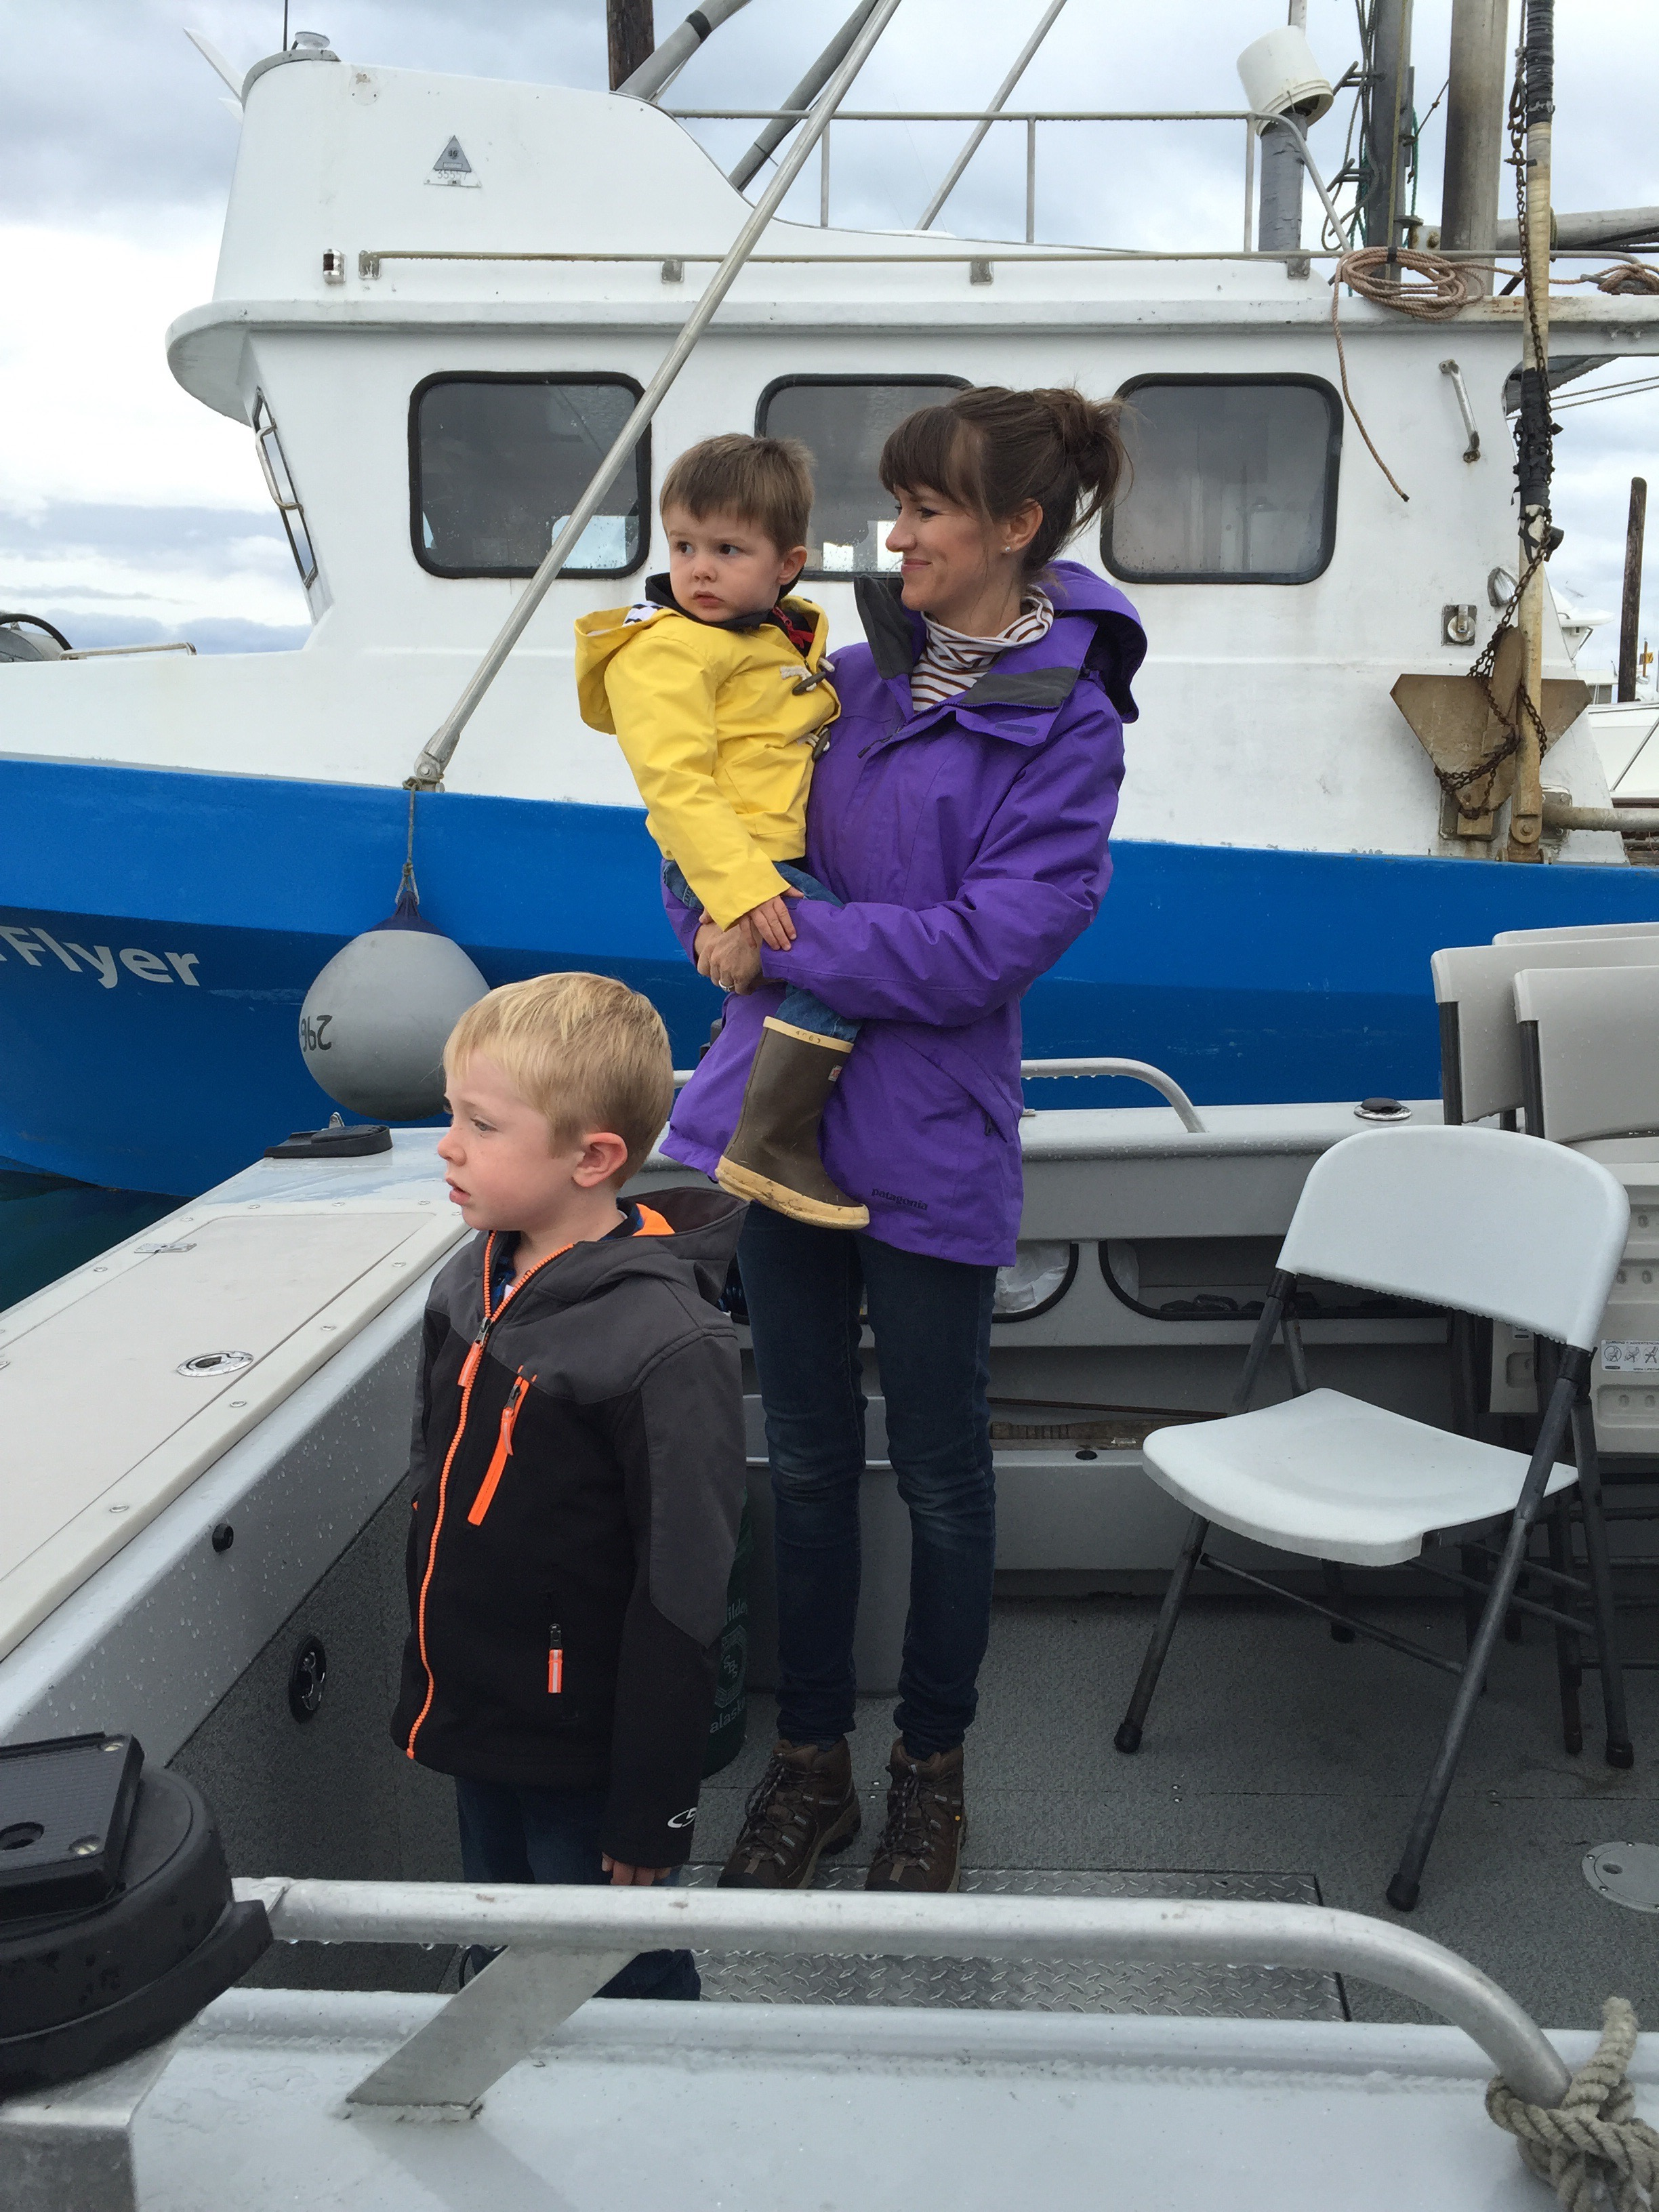 Checking out Grandpa's boat.